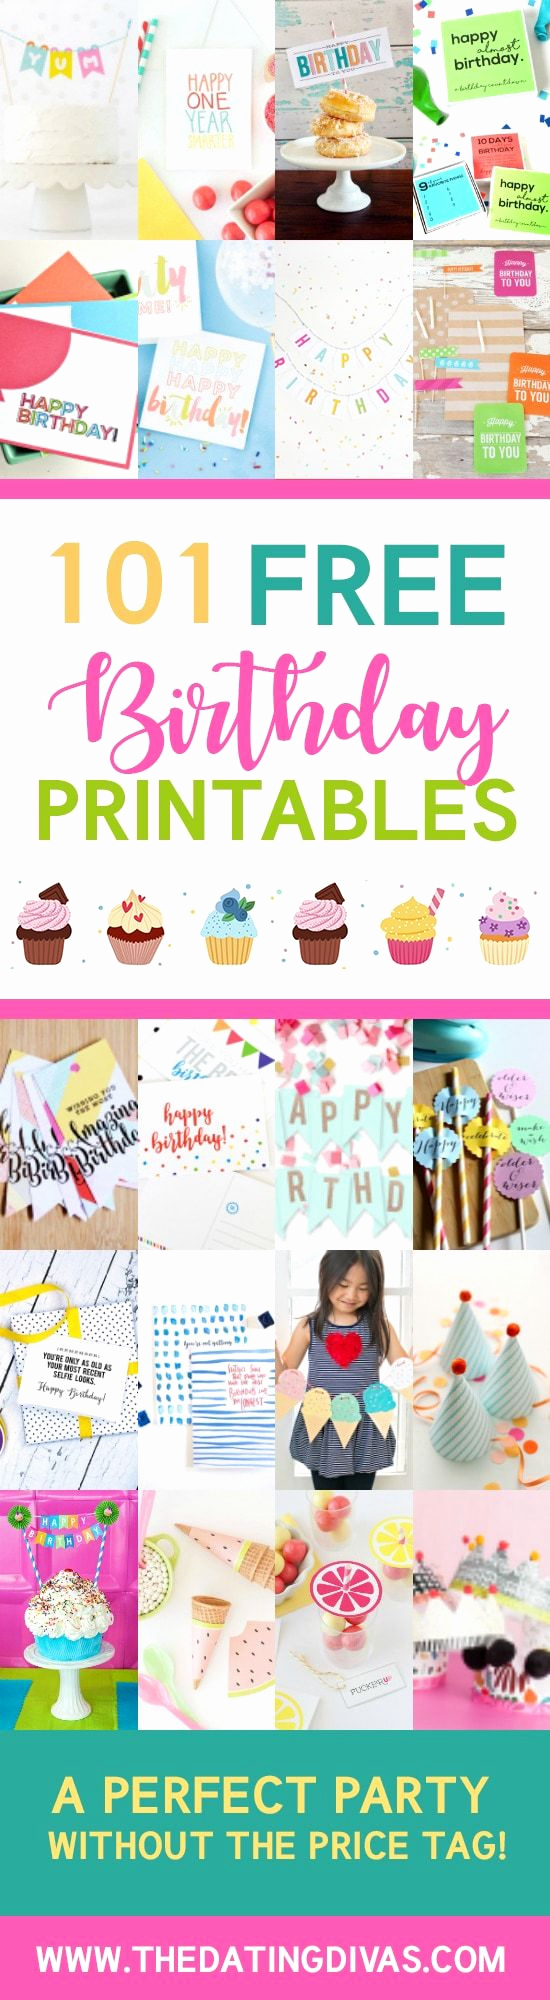 Last Minute Invitation Quotes Awesome Best 25 Last Minute Birthday Ts Ideas On Pinterest